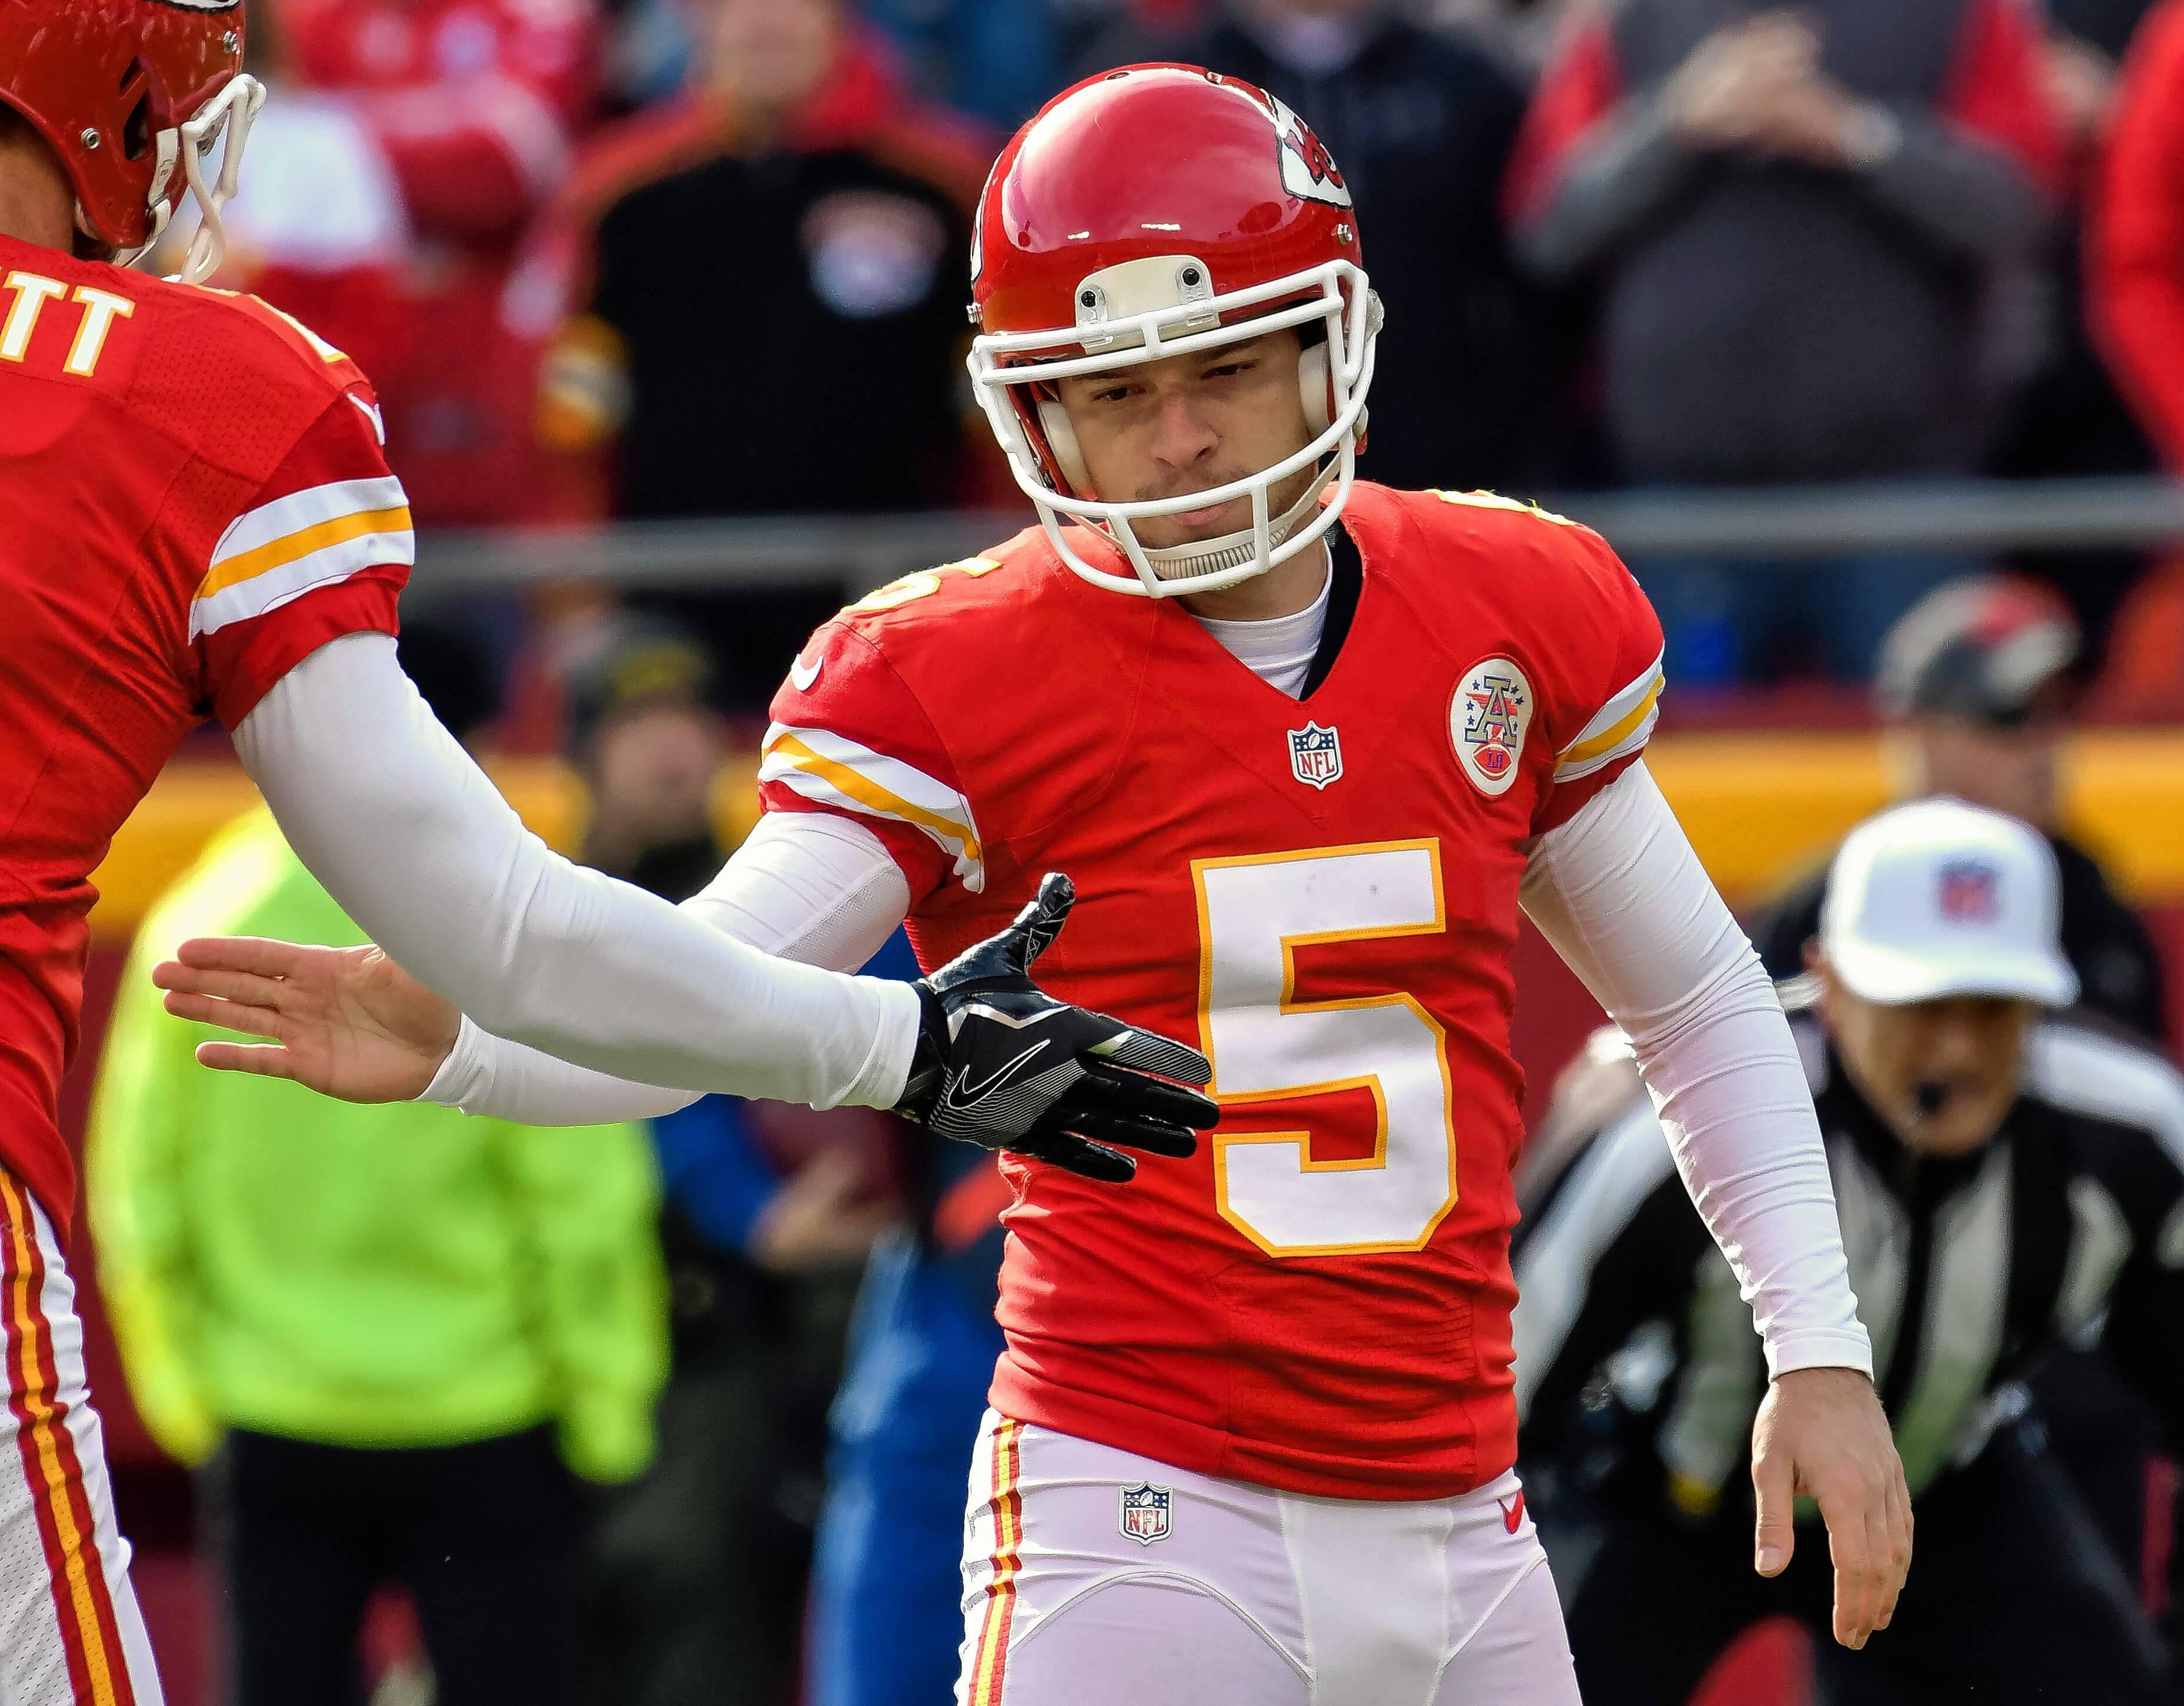 Former Kansas City Chiefs kicker Cairo Santos has signed with the Bears. Over four seasons, Santos has made 89 of 105 field-goal attempts (84.8 percent).